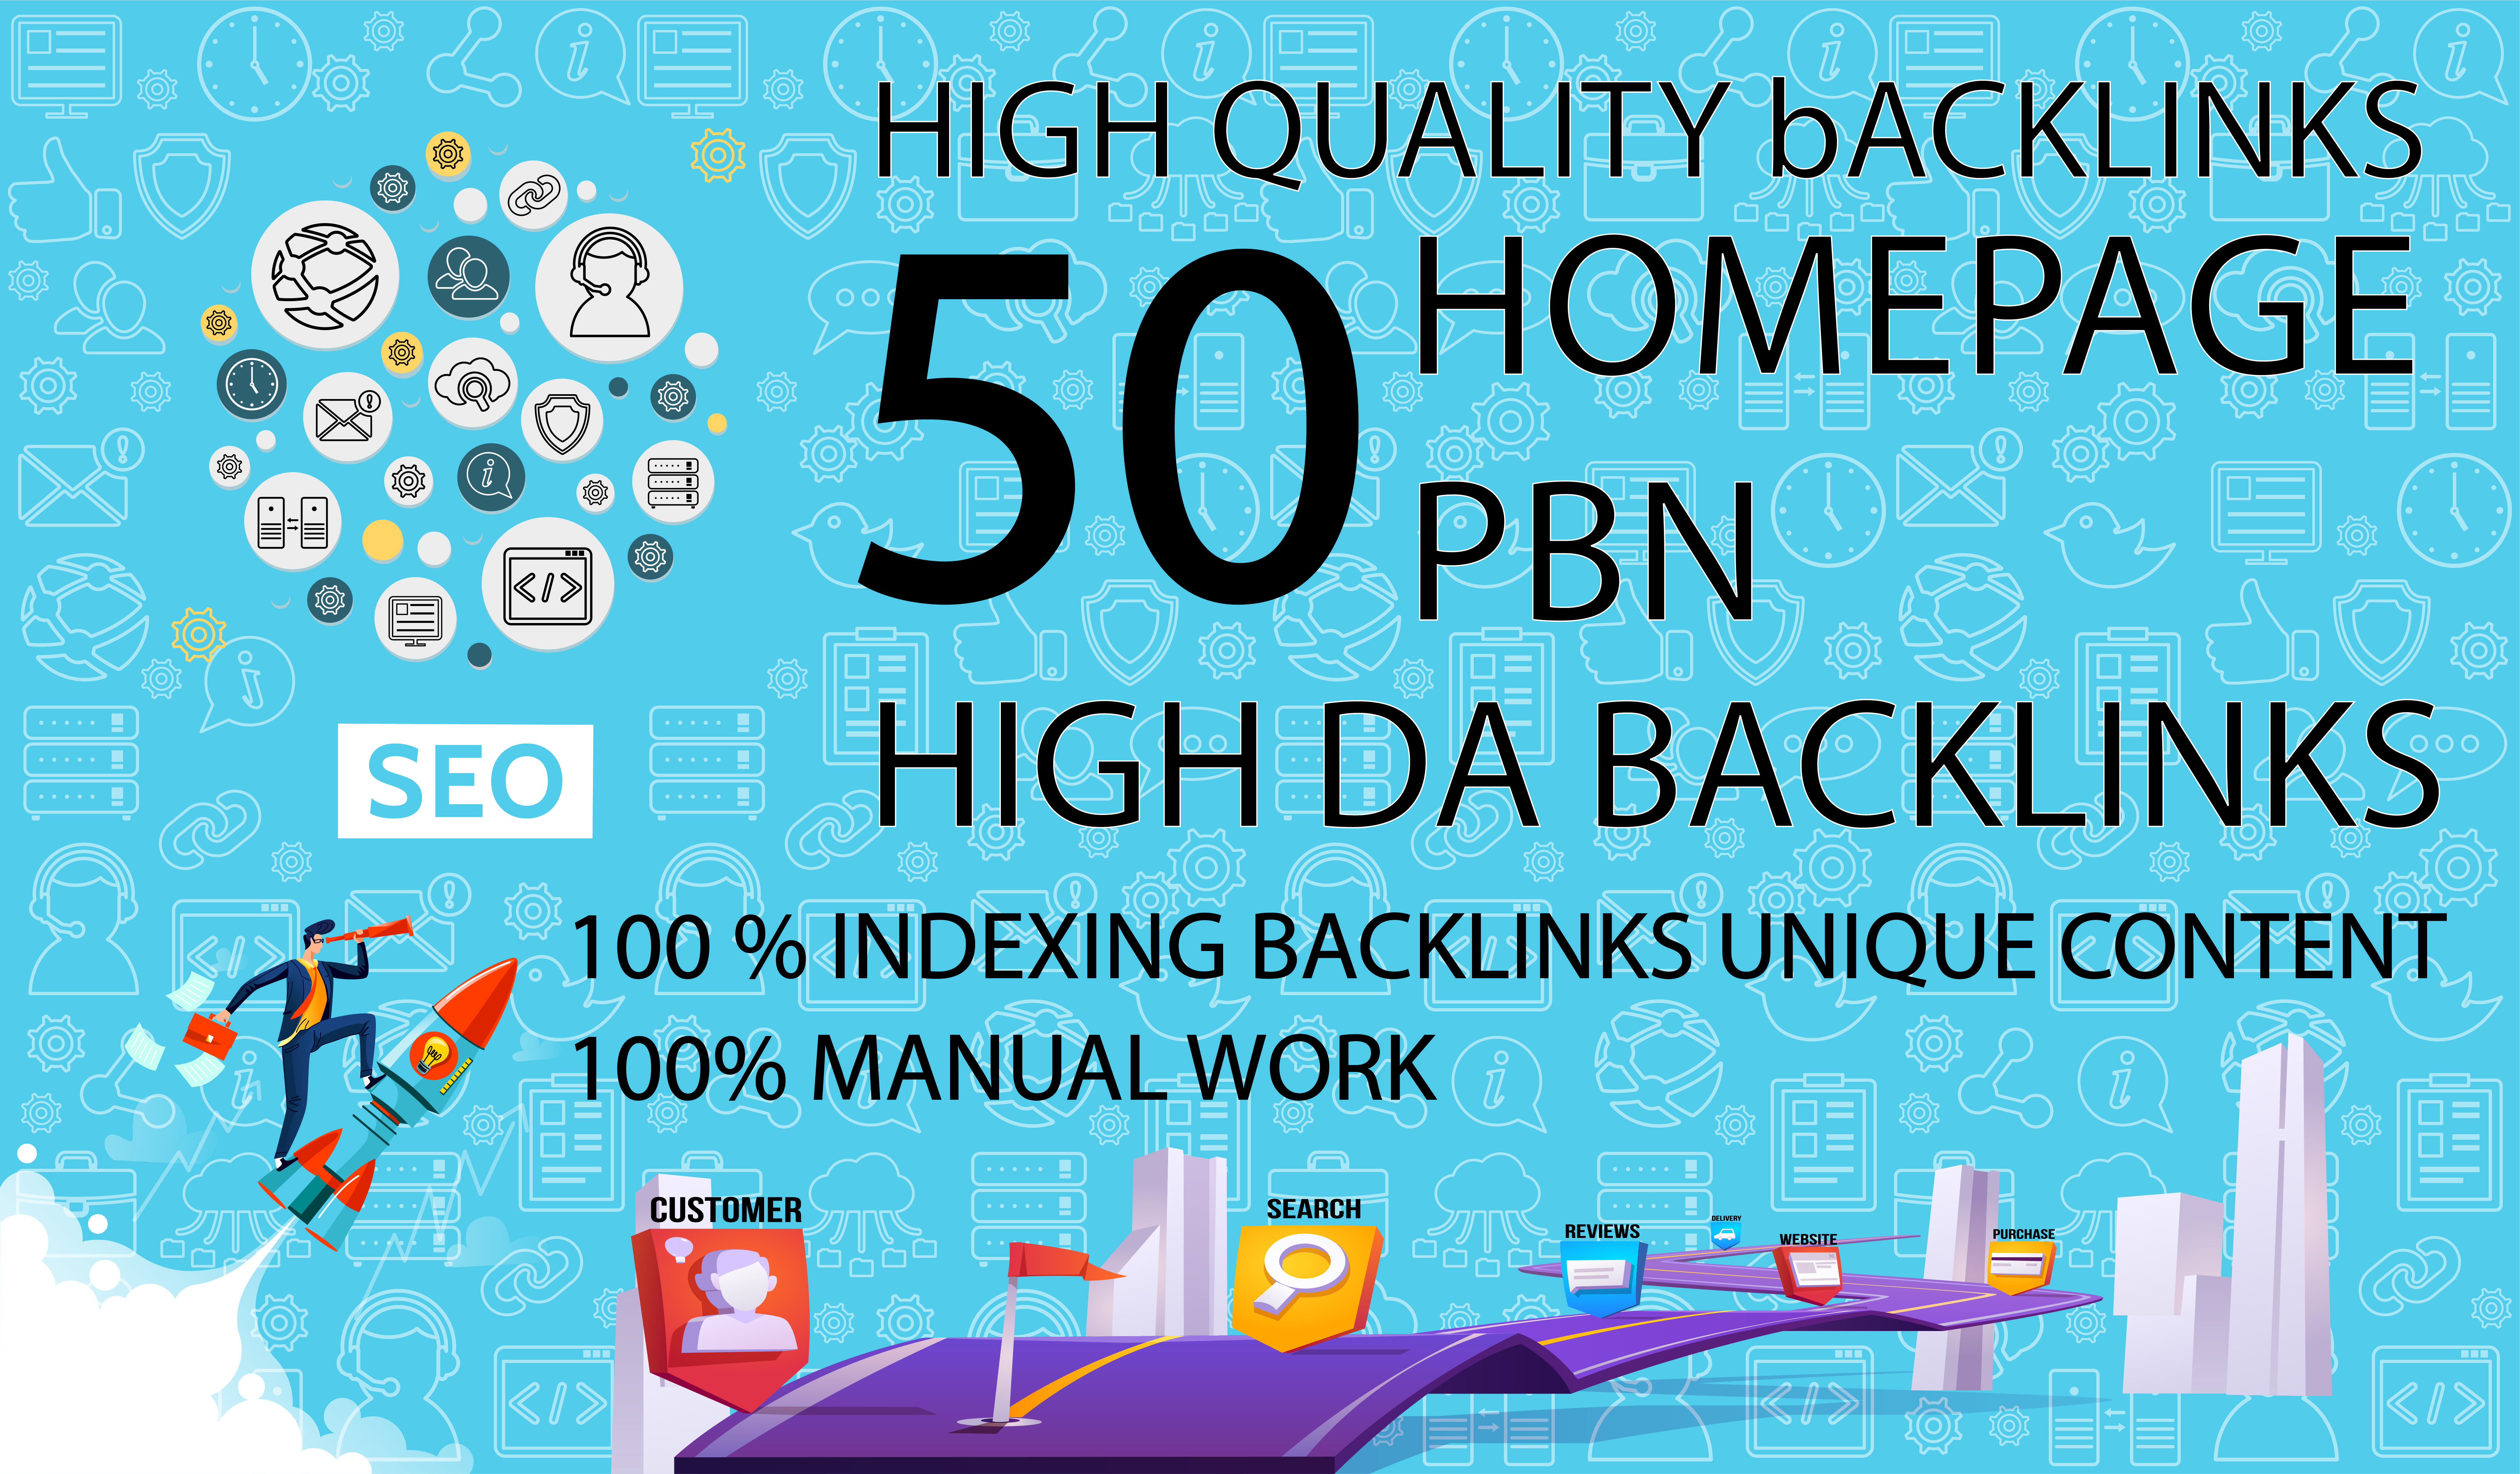 Get 50 Dofollow Homepage PBN Backlinks On High DA 25+